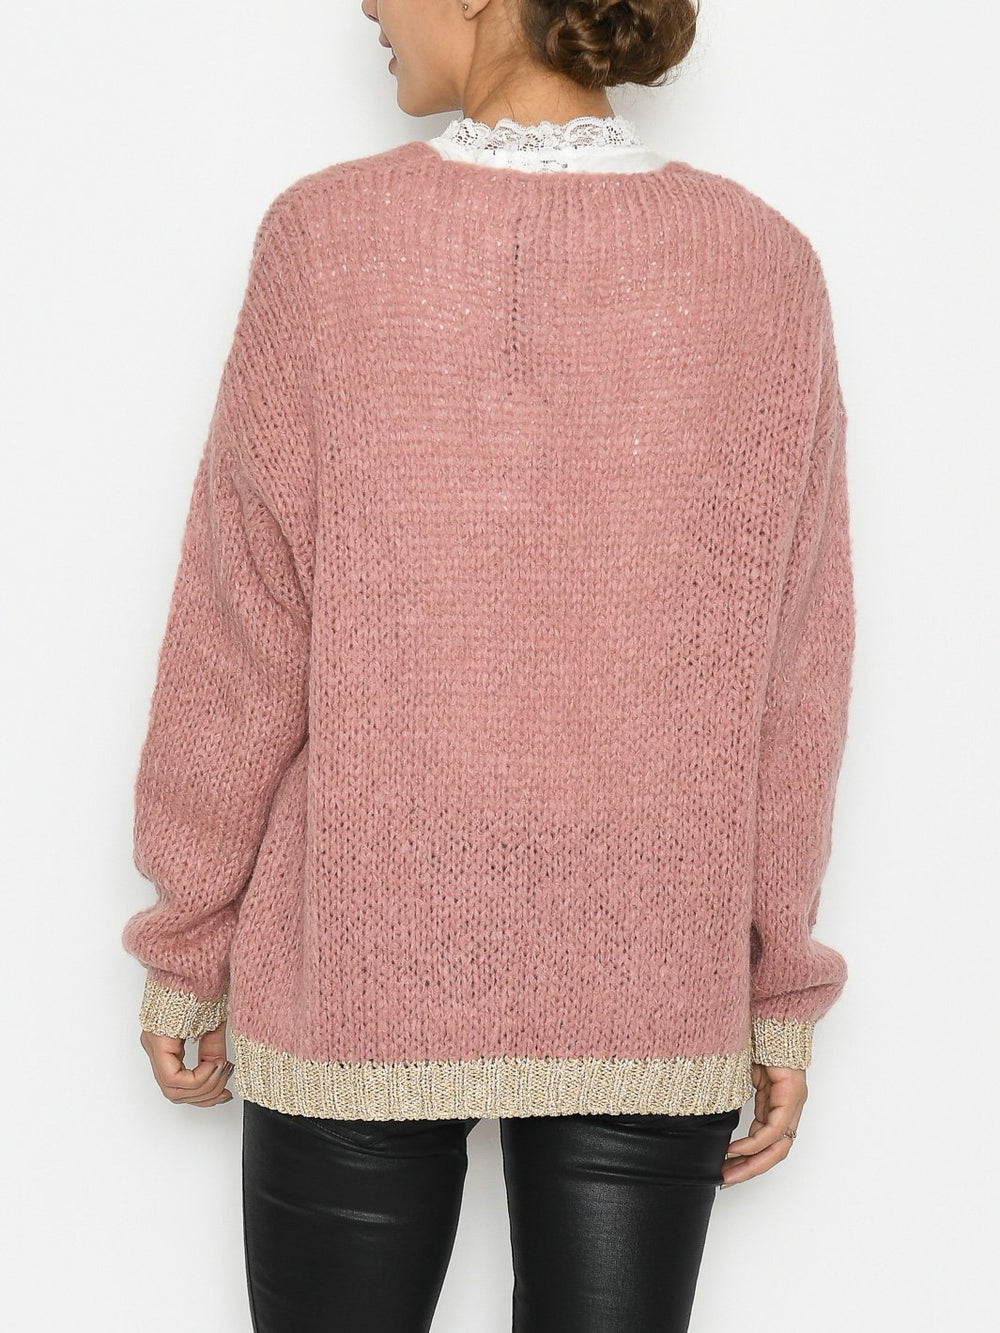 Noella Kala knit cardigan wool lurex/old rose - Online-Mode